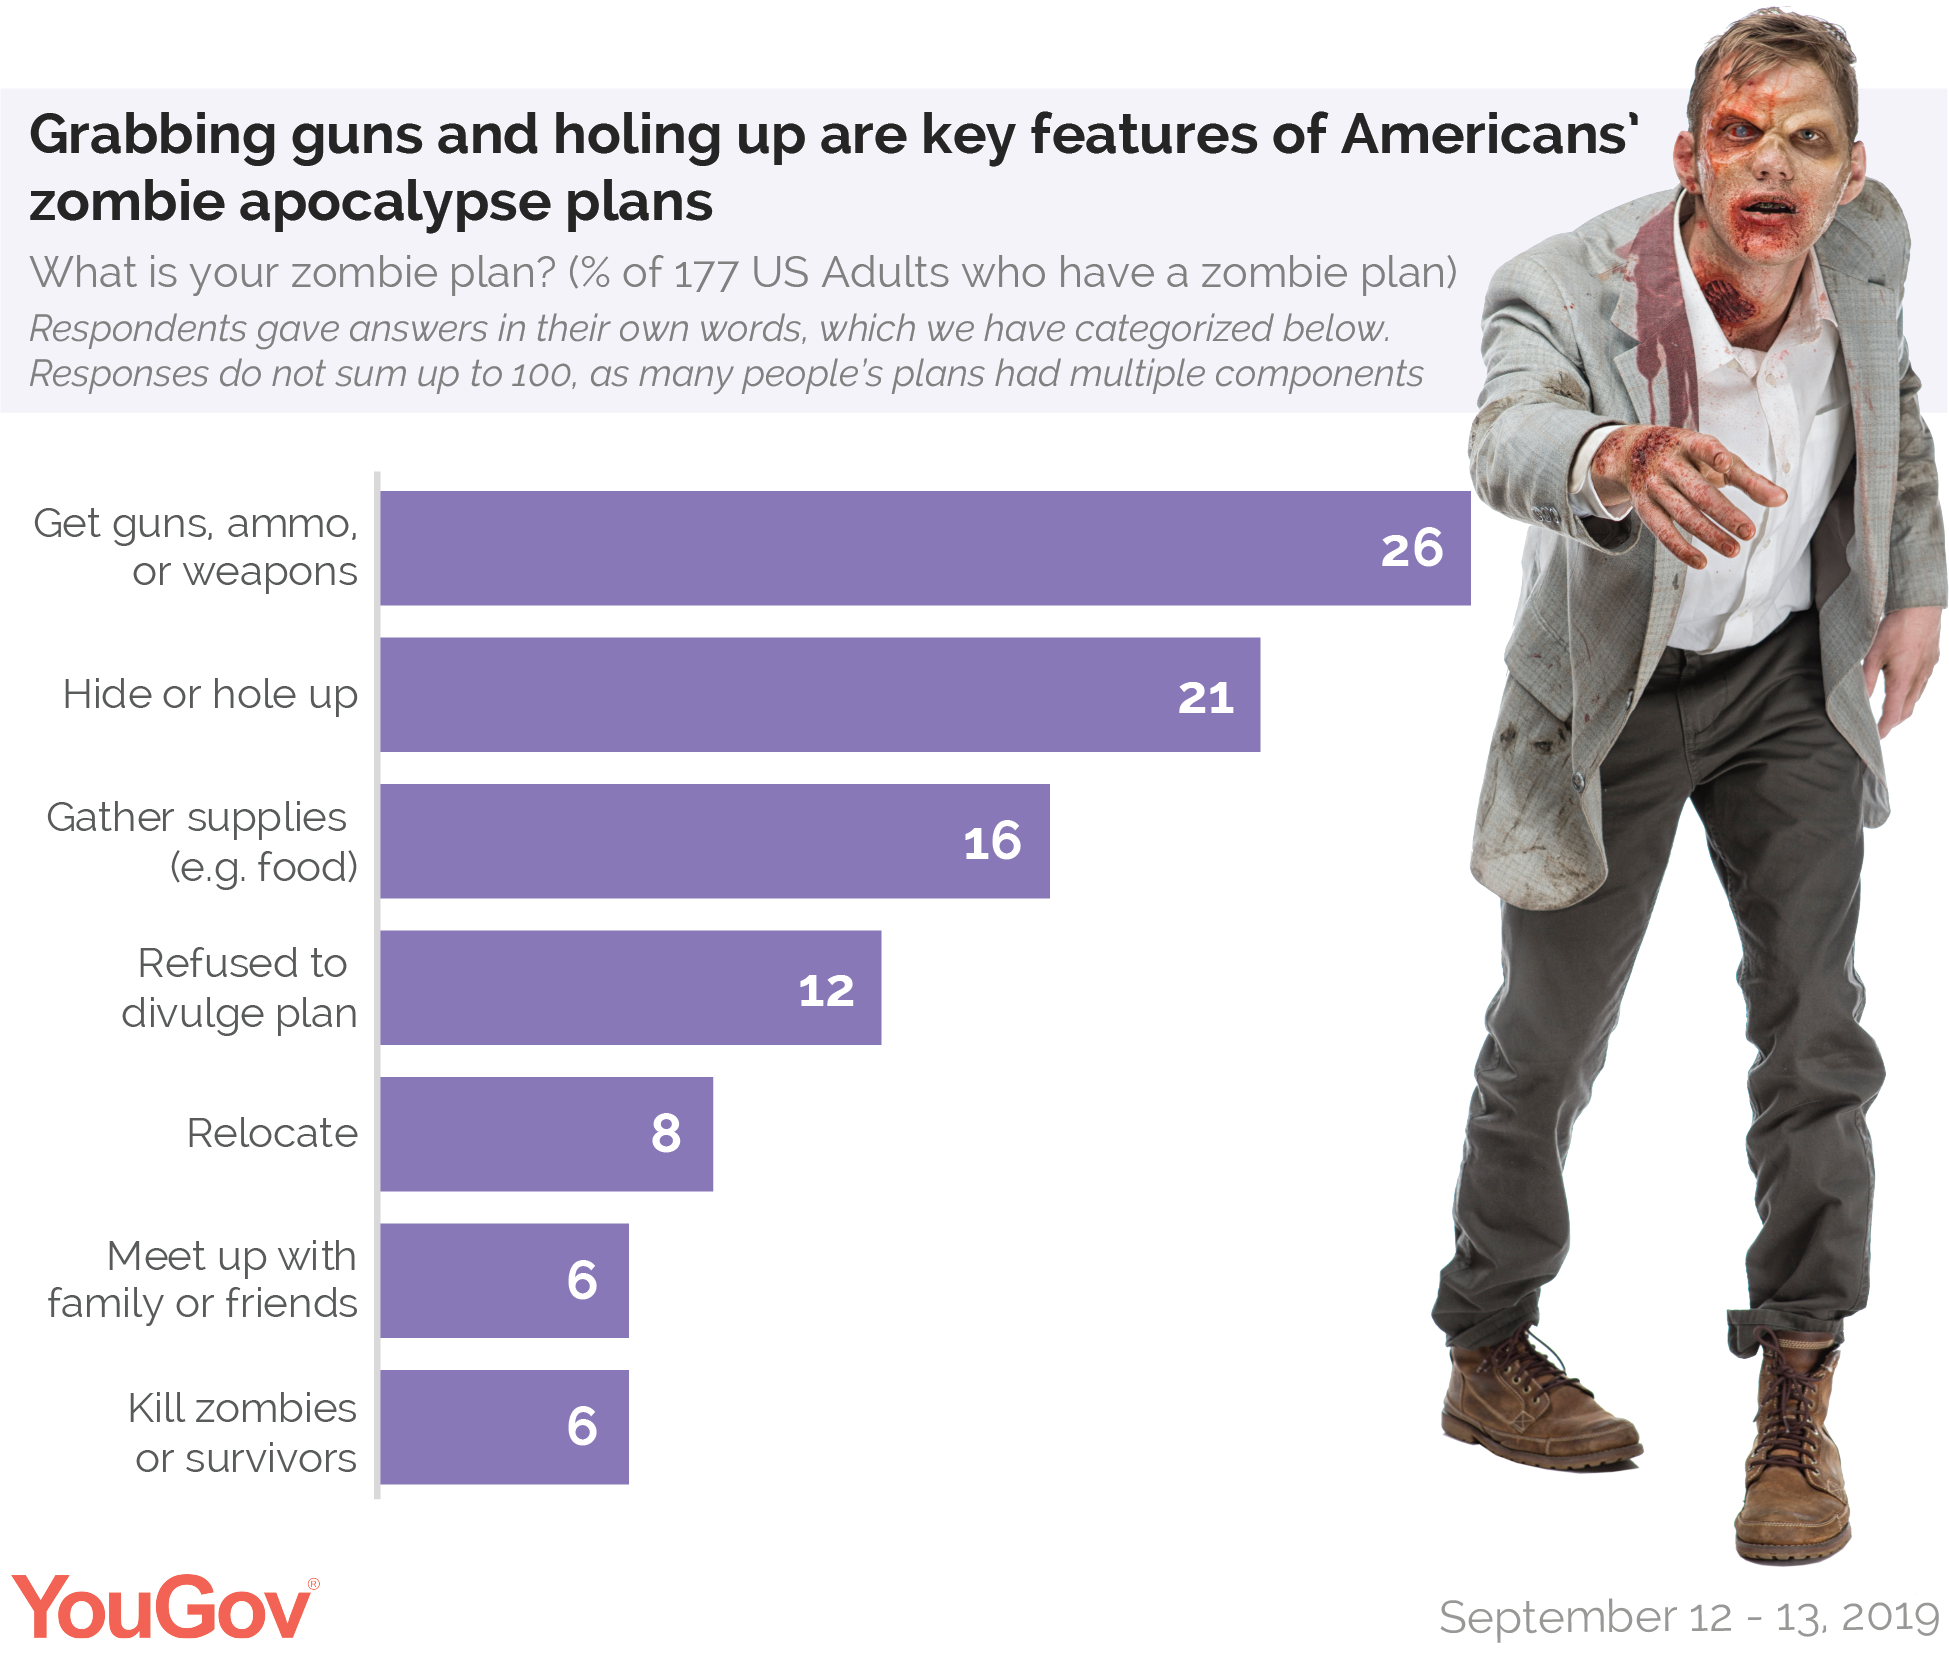 Grabbing guns and holing up are key features of Americans' zombie apocalypse plans